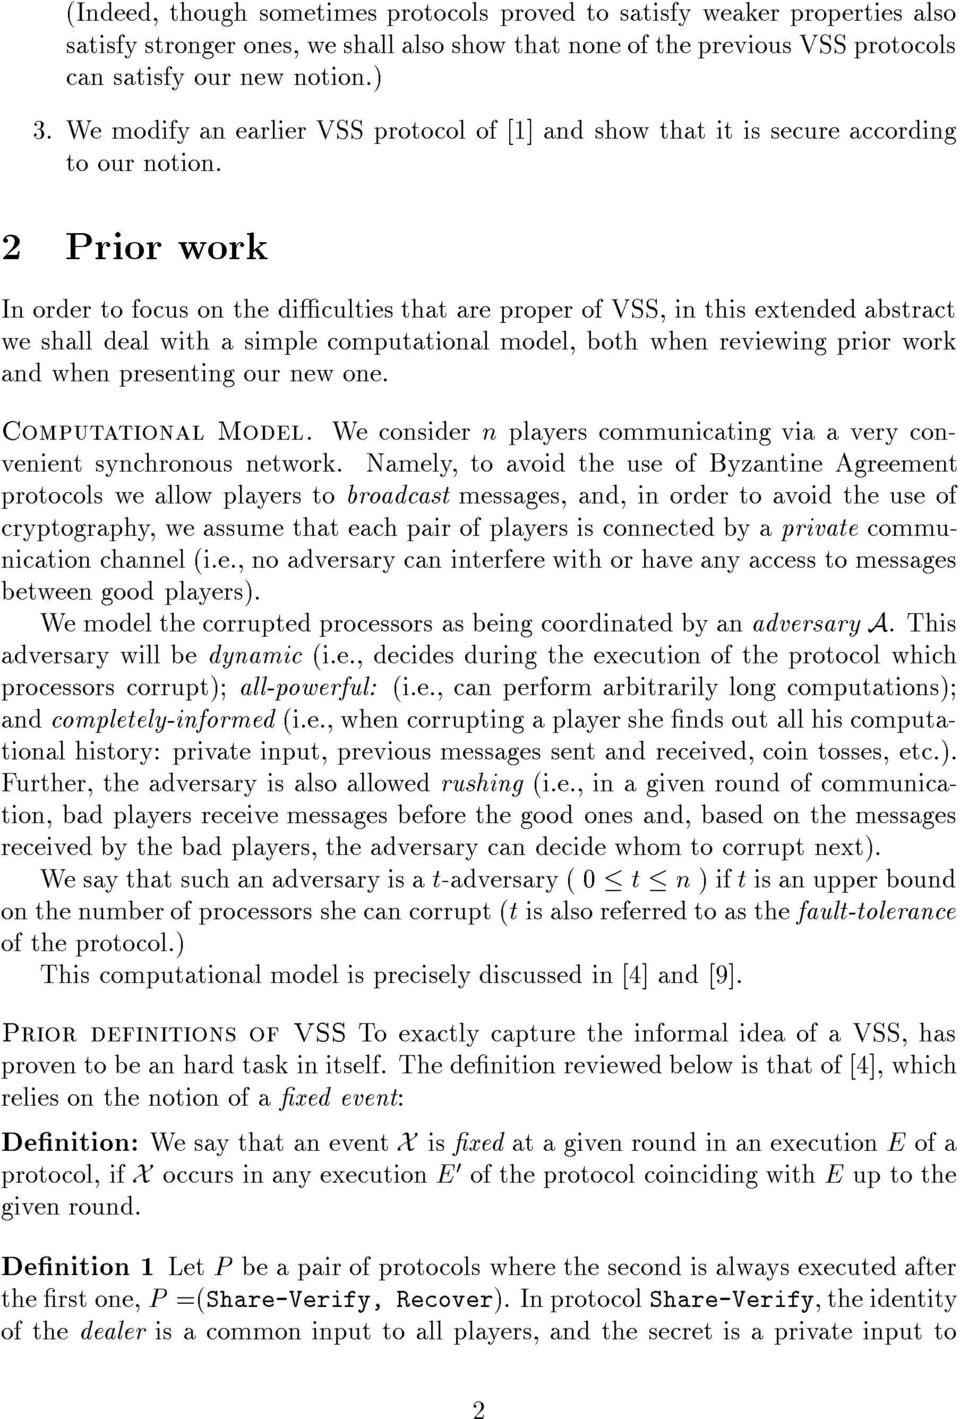 2 Prior work In order to focus on the diculties that are proper of VSS, in this extended abstract we shall deal with a simple computational model, both when reviewing prior work and when presenting